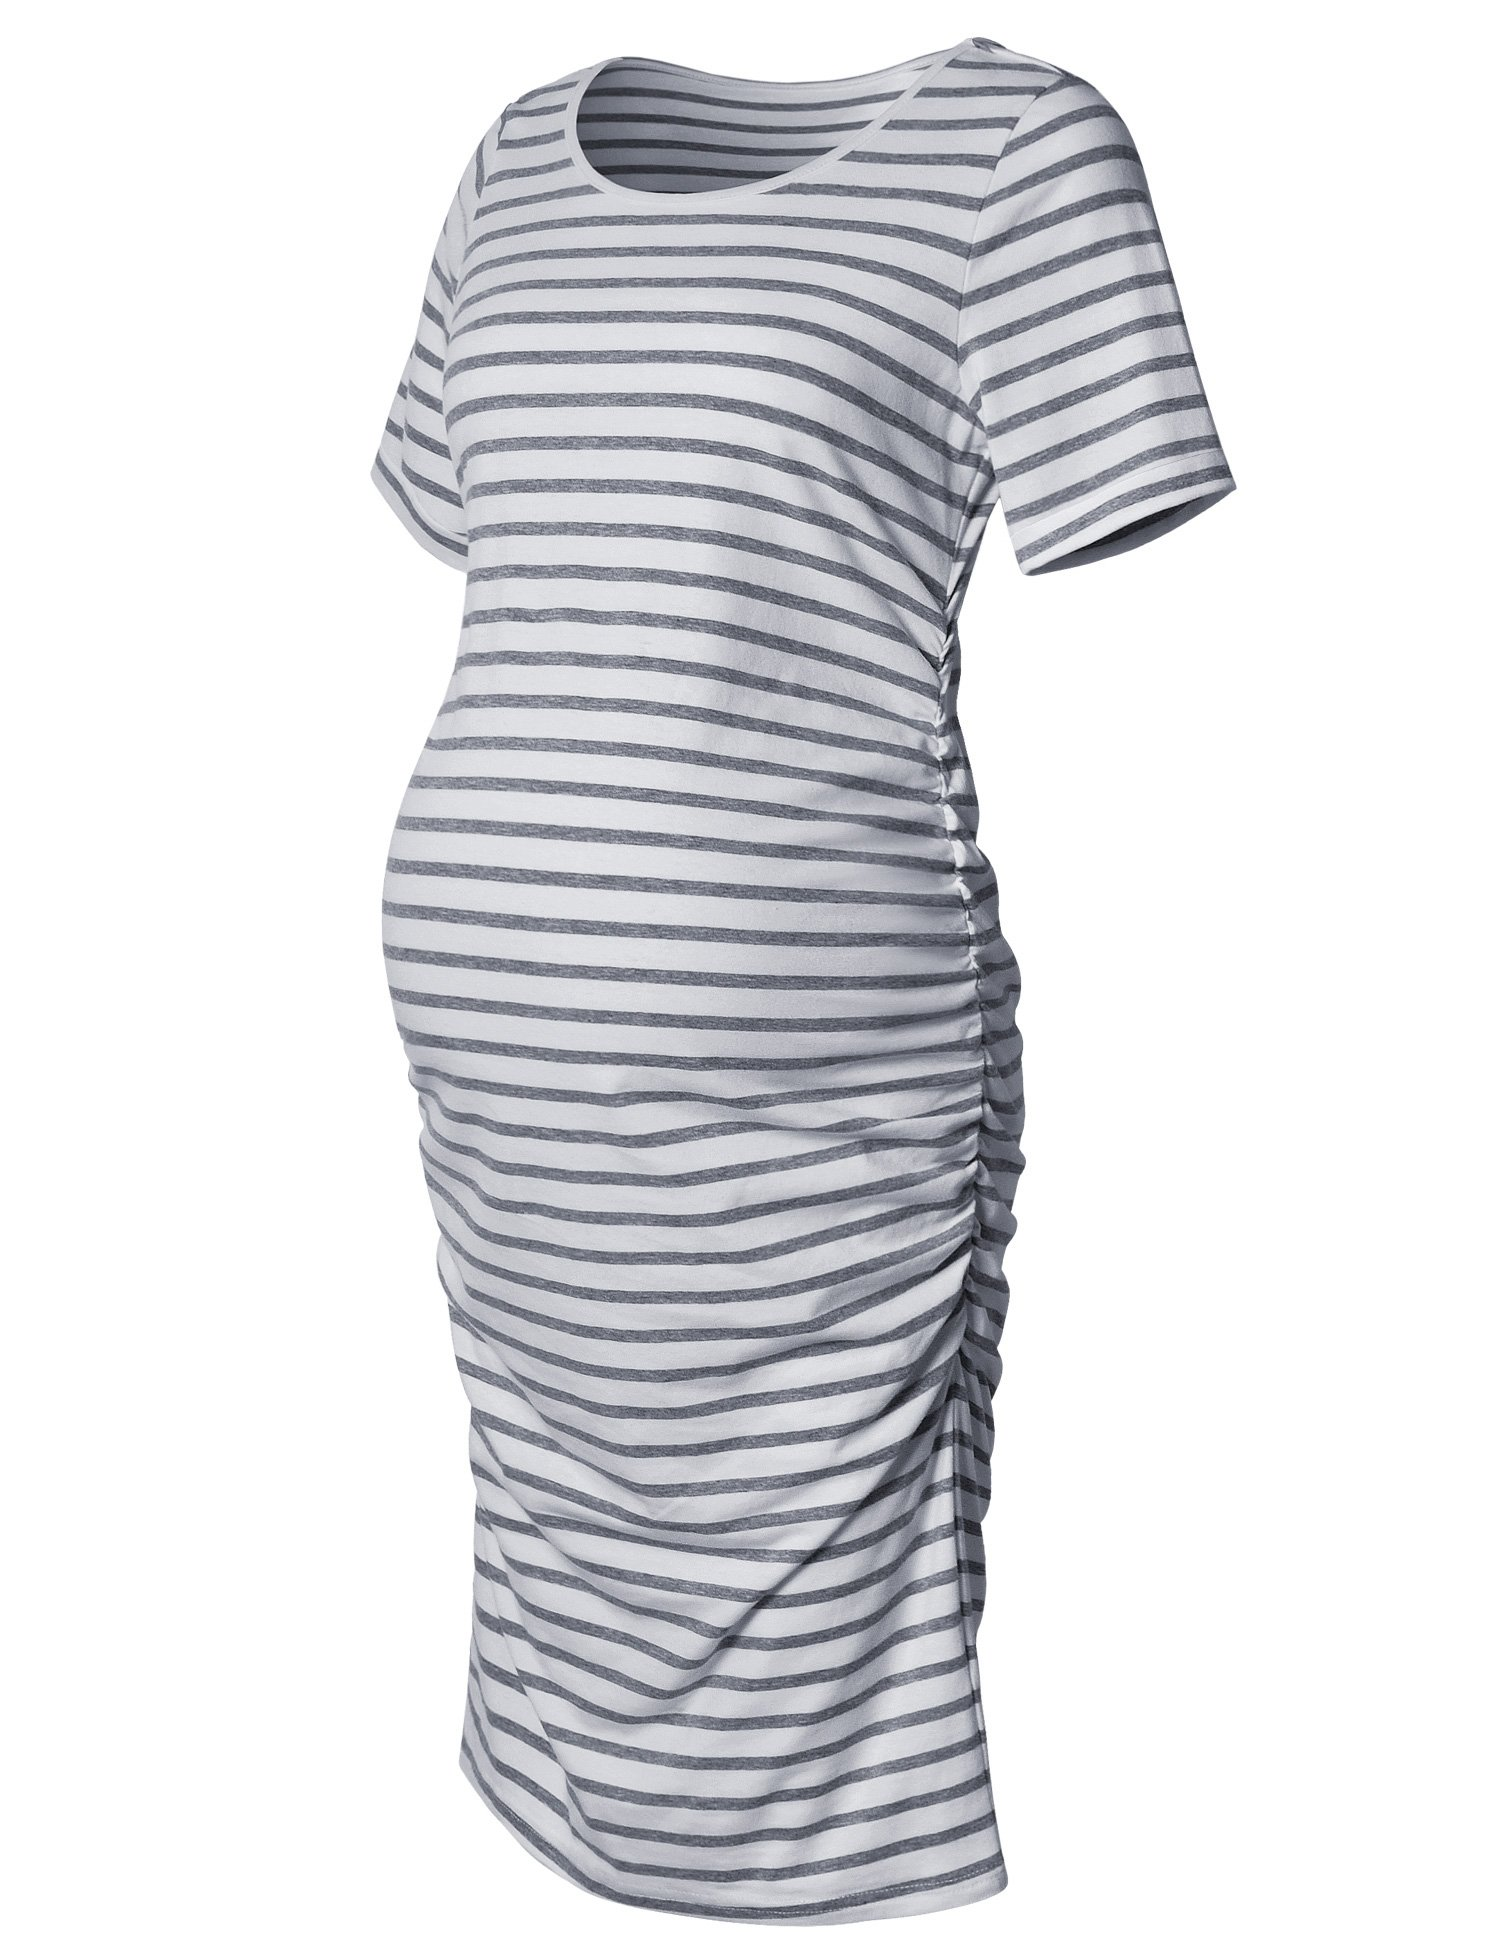 Maternity Dress,Bodycon Maternity Clothes for Women,Casual Short Sleeve Ruched Sides,Grey and White Stripe XL